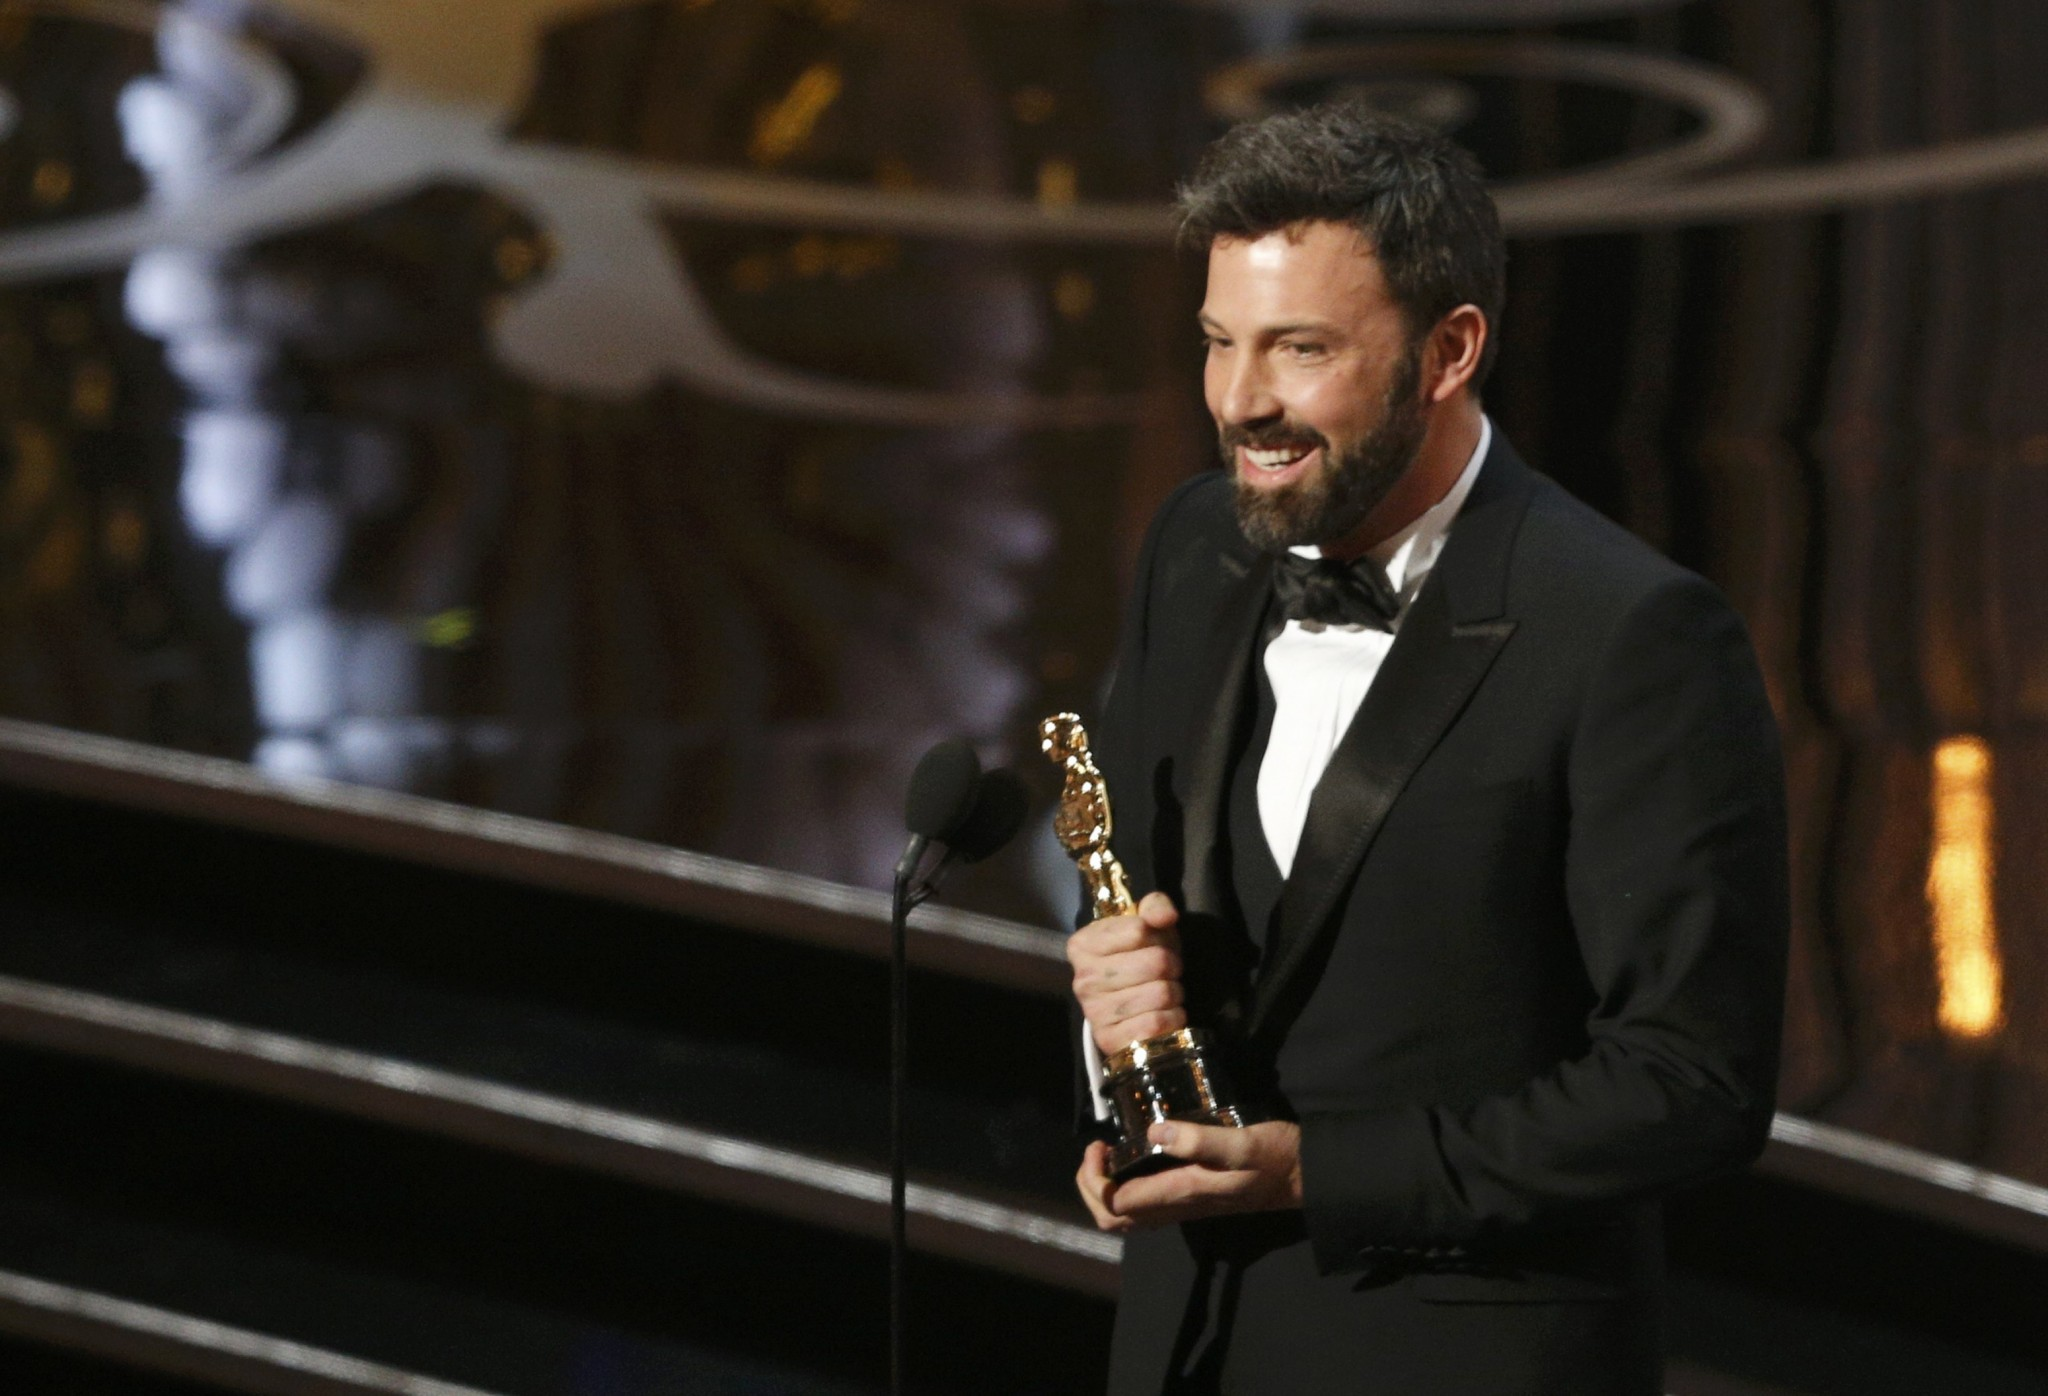 """Director and producer Ben Affleck accepts the Oscar for best picture for """"Argo"""" at the 85th Academy Awards in Hollywood, California, February 24, 2013. REUTERS/Mario Anzuoni (UNITED STATES - Tags: ENTERTAINMENT) (OSCARS-SHOW)"""